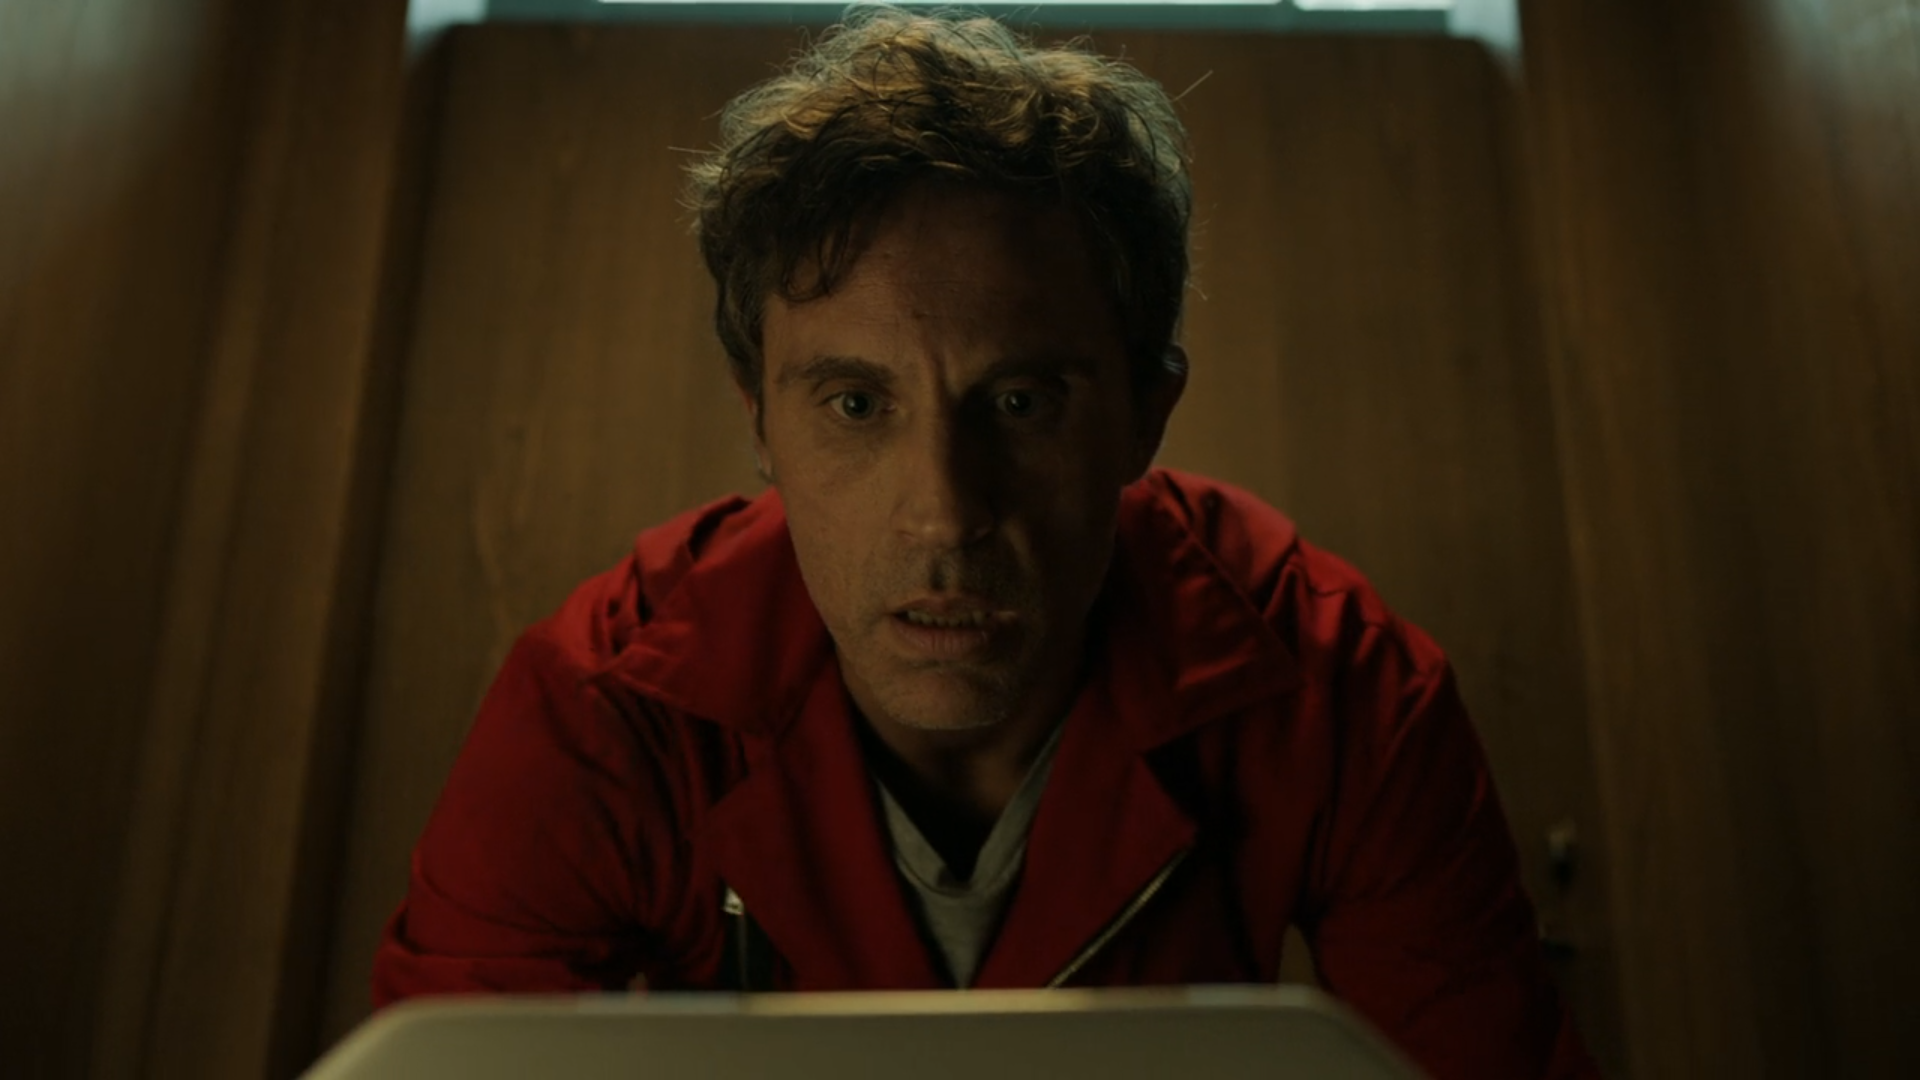 Image Jacintopng Wiki La Casa De Papel Fandom Powered By Wikia